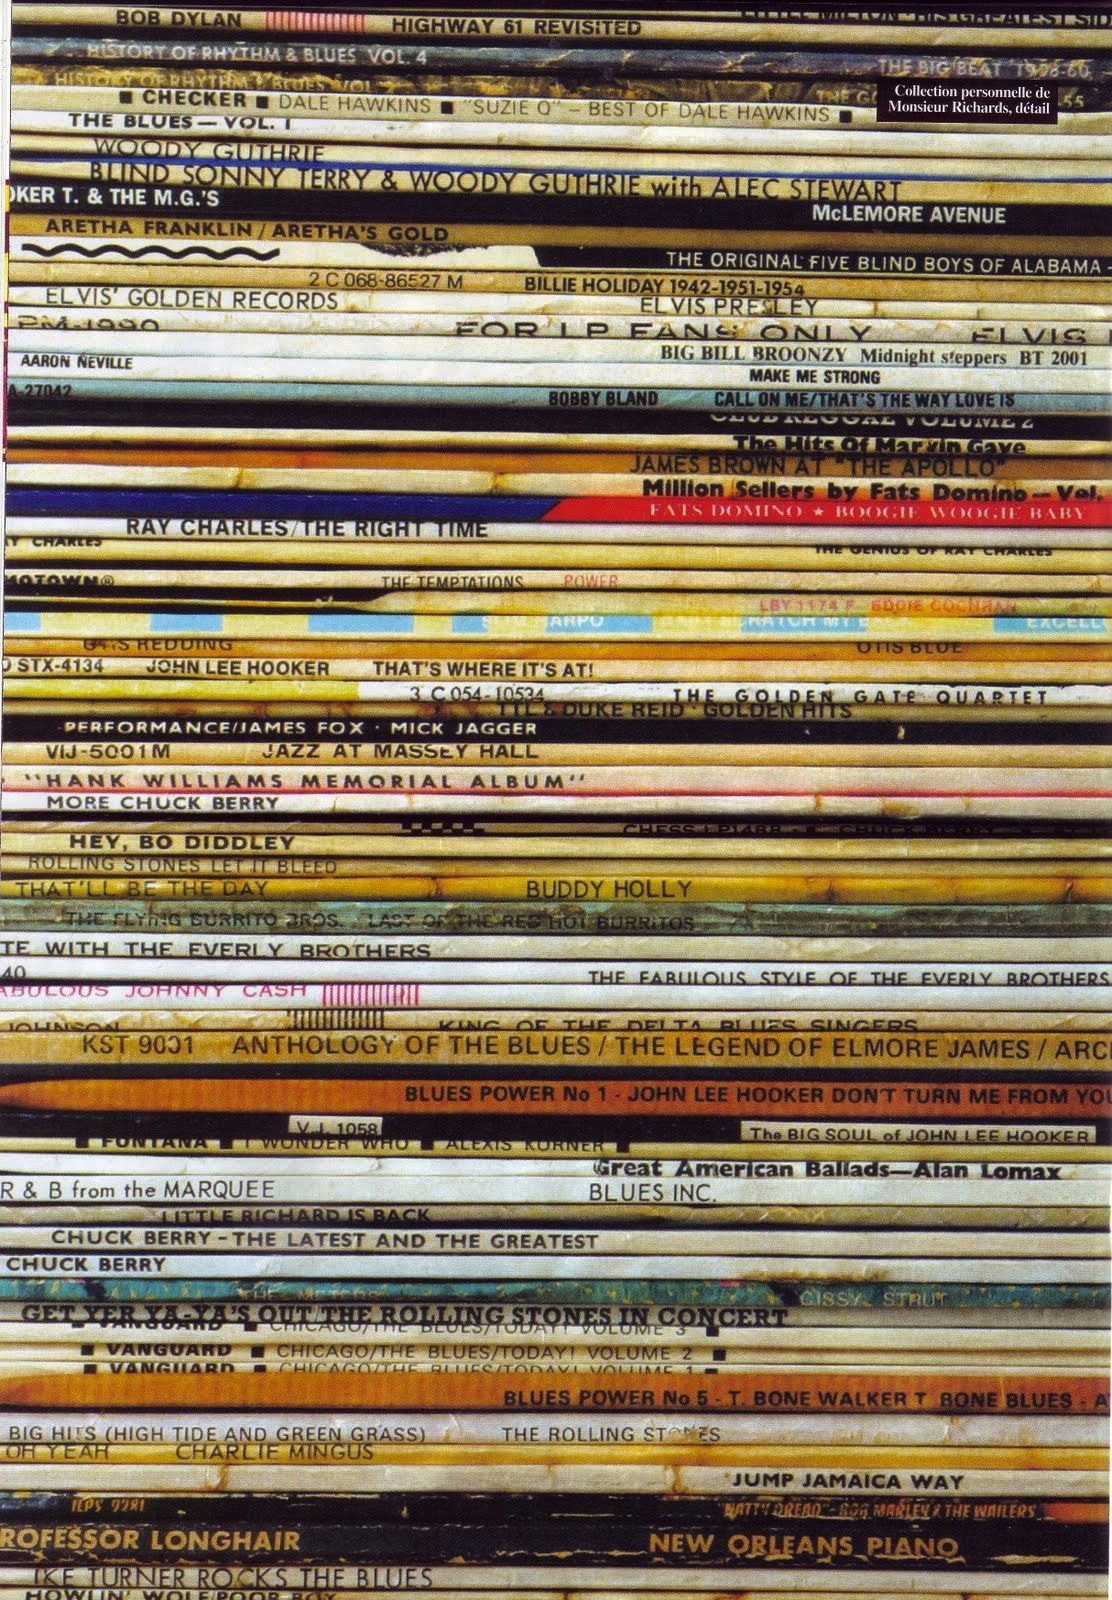 some of keith richards' record collection